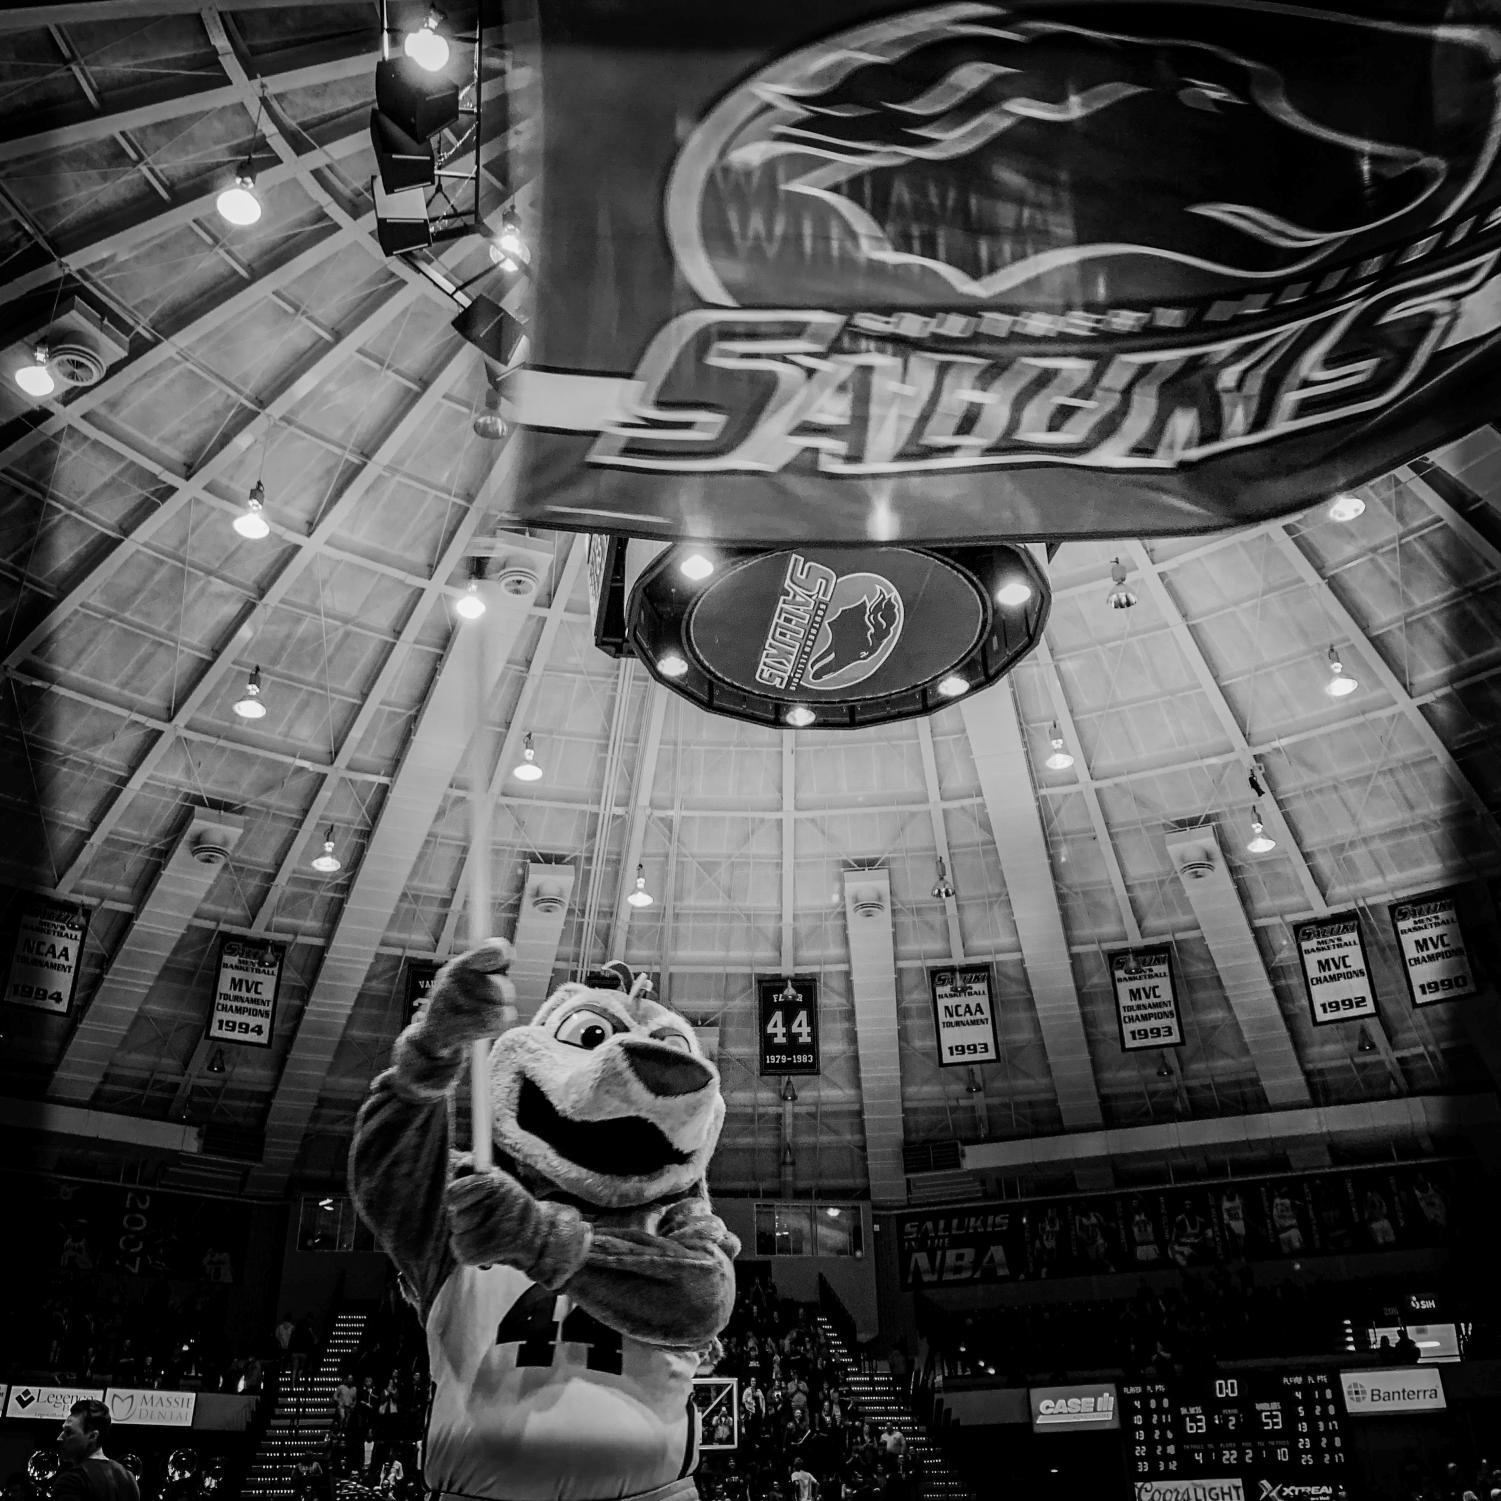 Grey+Dawg+celebrates+after+Southern+Illinois+Salukis%27+63-53+win+against+the+Loyola+Ramblers+on+Sunday%2C+Feb.+24%2C+2019+at+SIU+Arena.+The+images+in+this+collage+were+taken+with+an+iPhone+XS+Max+and+processed+in+Hipstamatic.